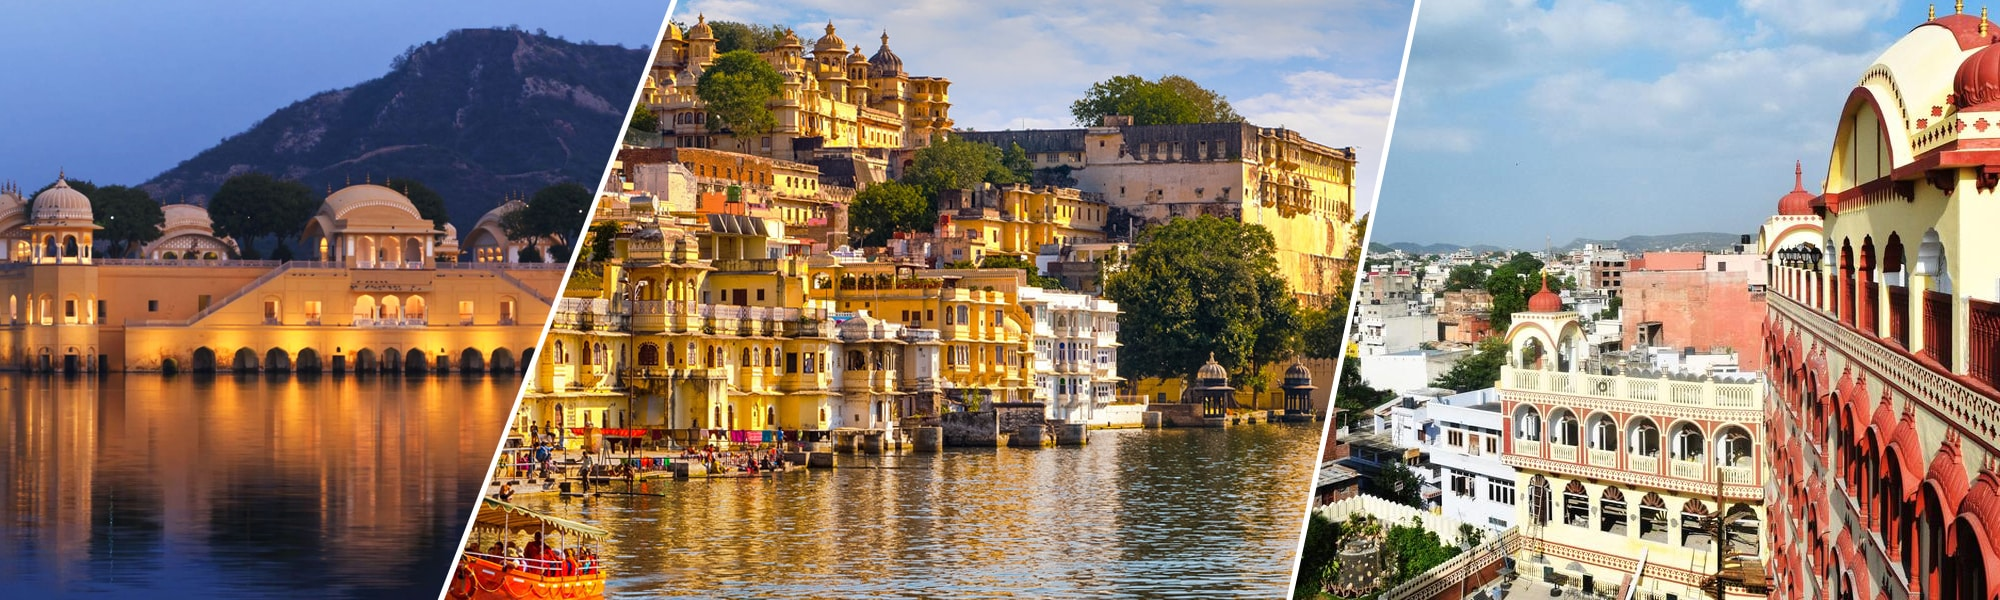 Rajasthan, Delhi & Agra – The Golden Triangle package Tour